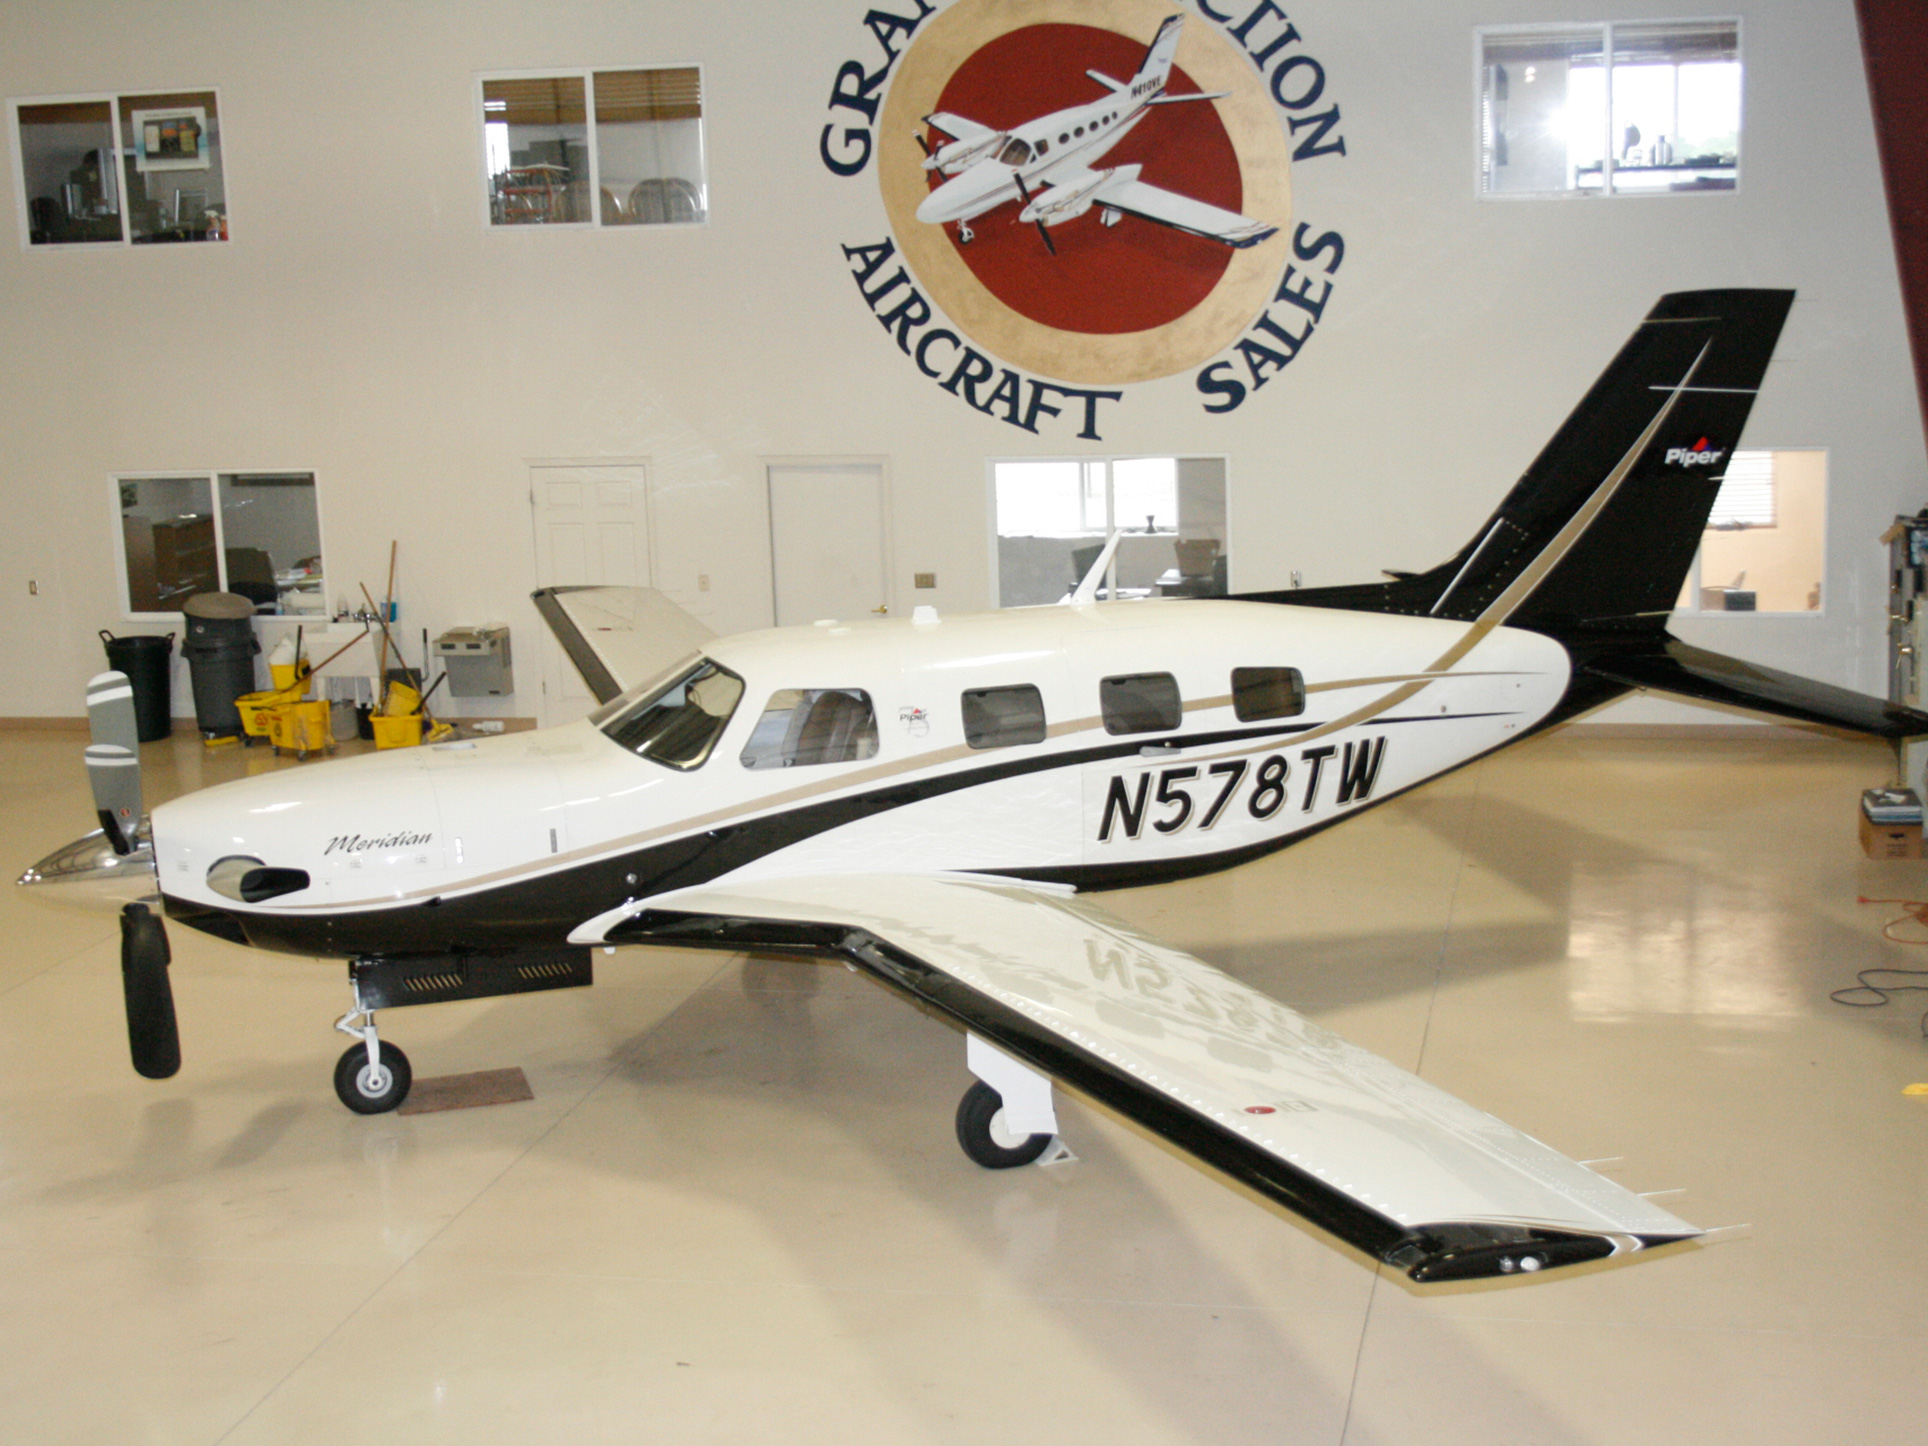 Sold | Grand Junction Aircraft Sales | Grand Junction, CO